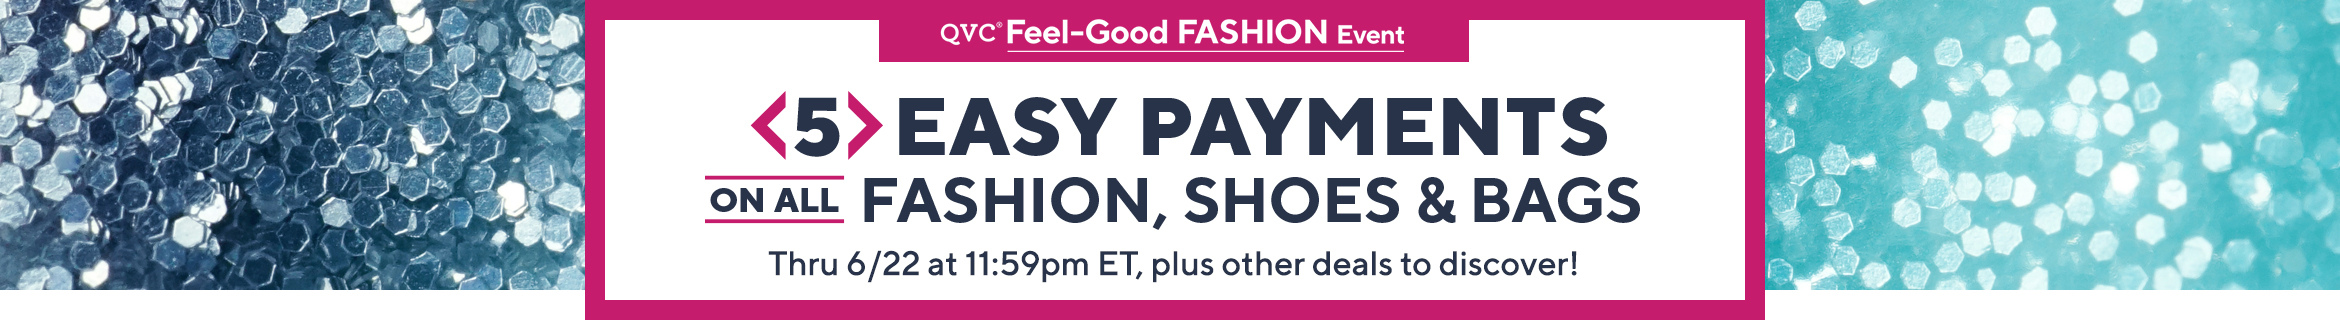 QVC® Feel-Good Fashion Event 5 Easy Payments on All Fashion, Shoes & Bags Thru 6/22 at 11:59pm ET, plus other deals to discover!